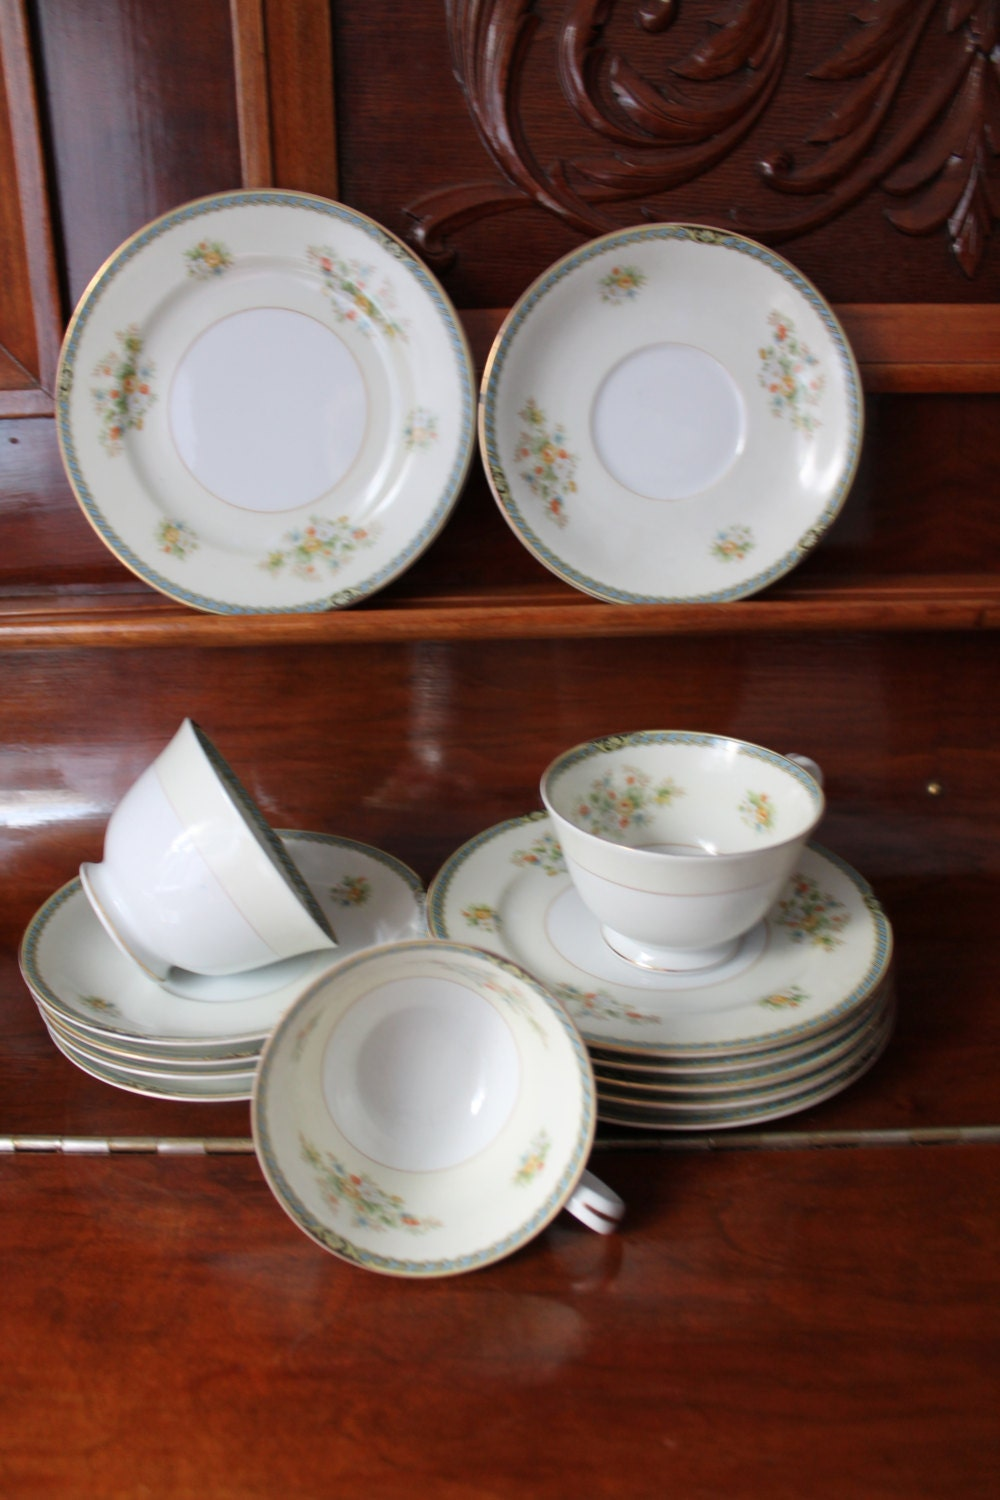 How Do You Find the Date on Noritake China